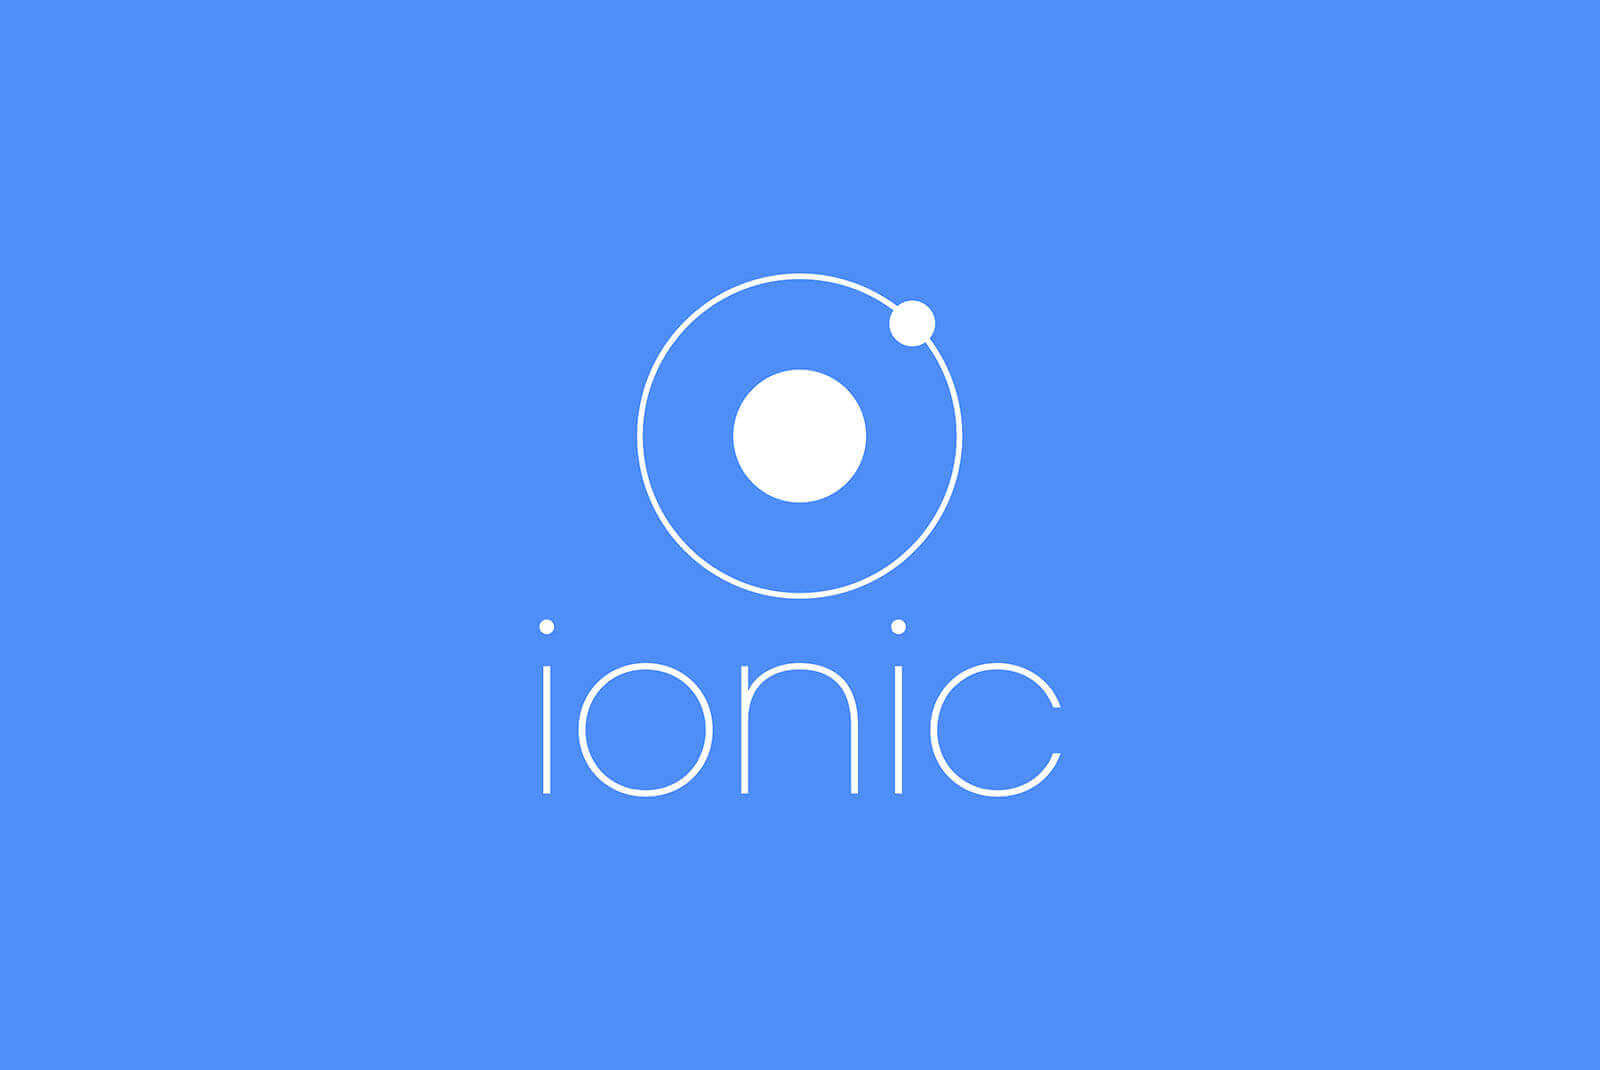 hat'S Included In Ionic?